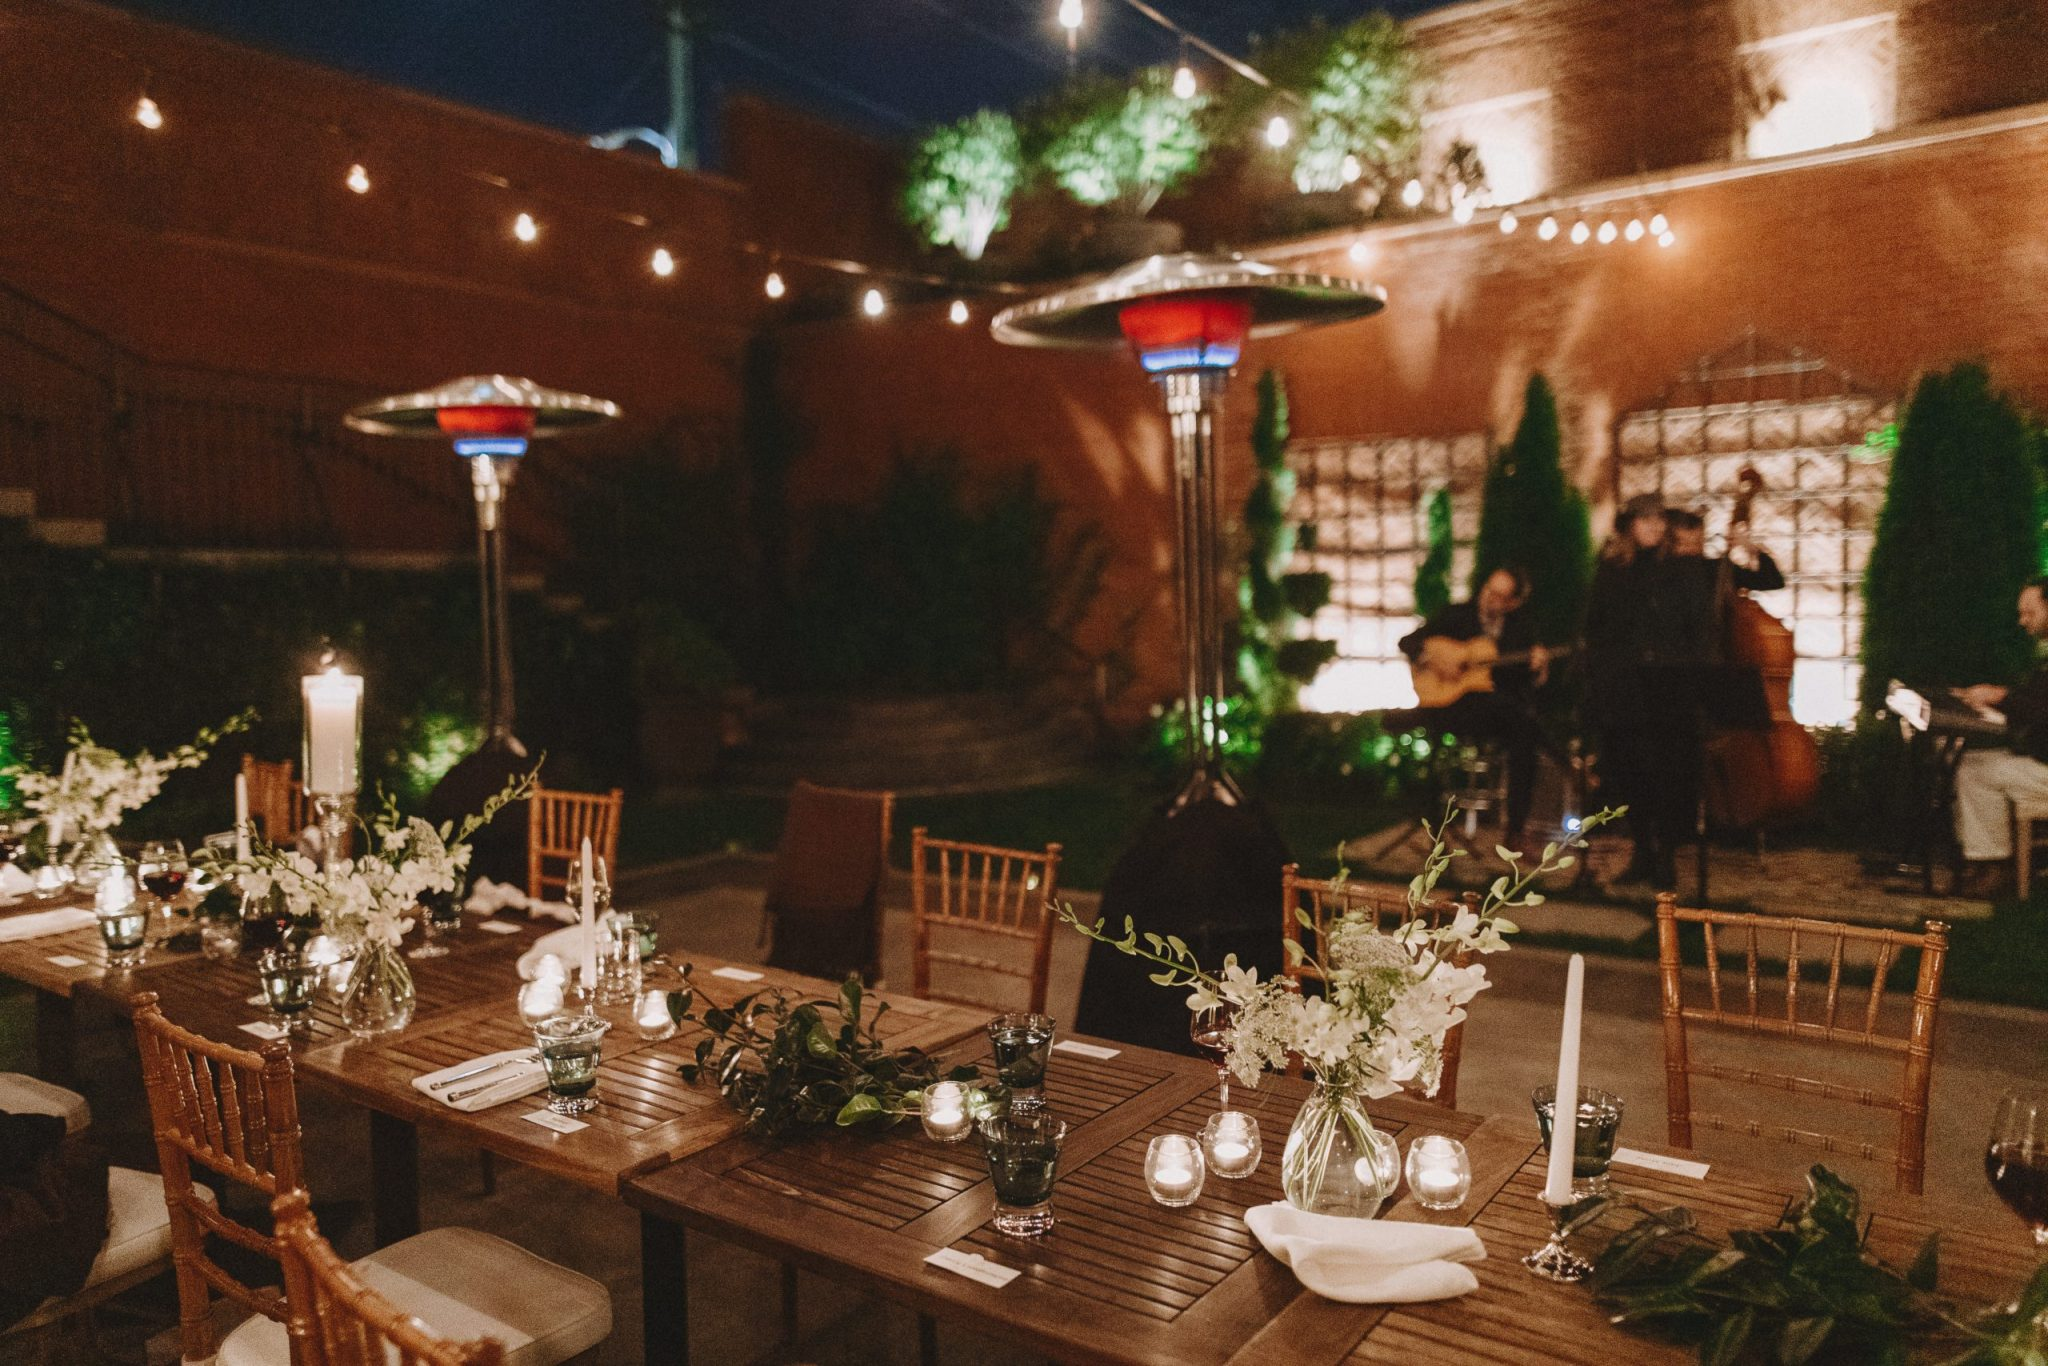 Dinner set up in the courtyard for a wedding